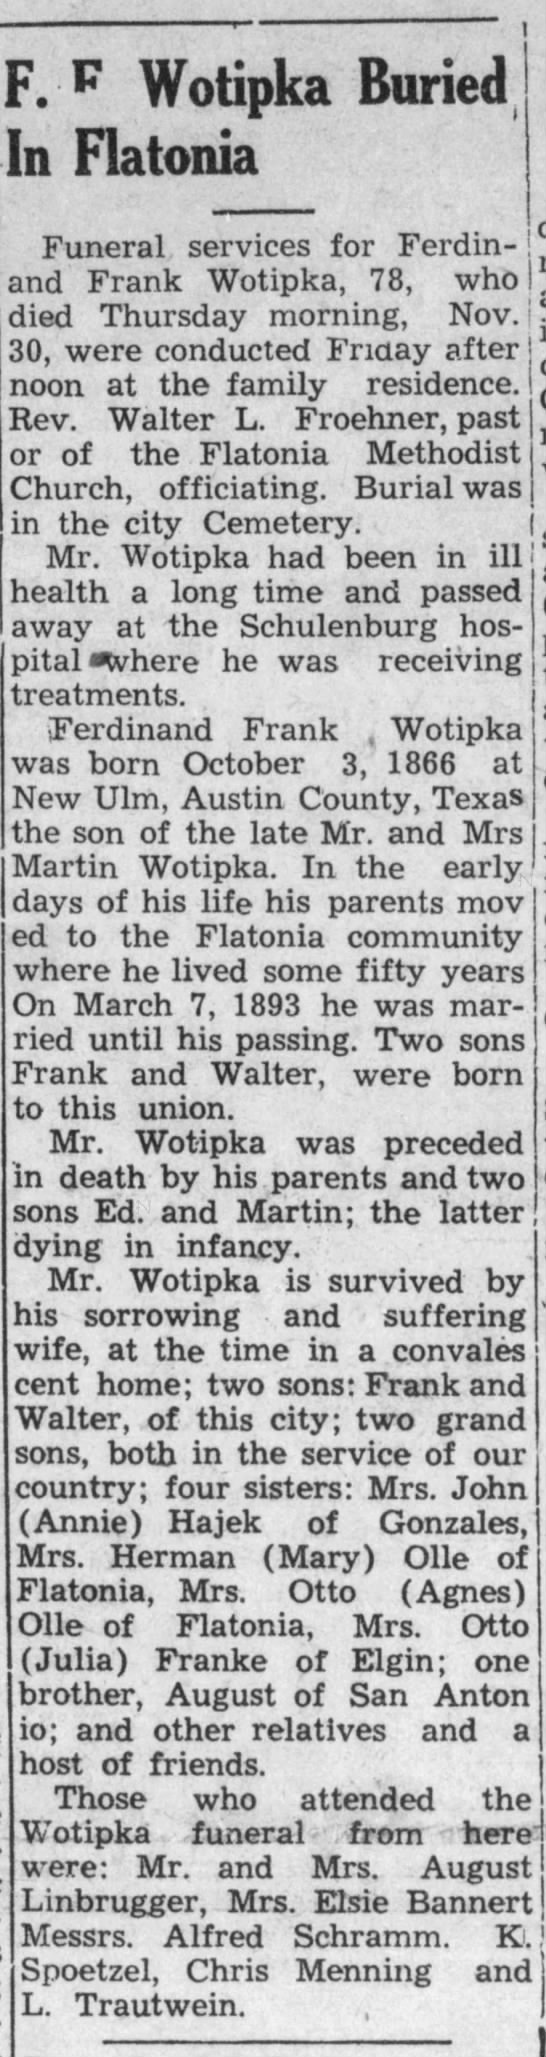 Obituary for Frank Wotipka. Shiner Gazette (Shiner, Texas) 14 Dec 1944, page 1 - |F. p Wotipka Buried In Flatonia Funeral...